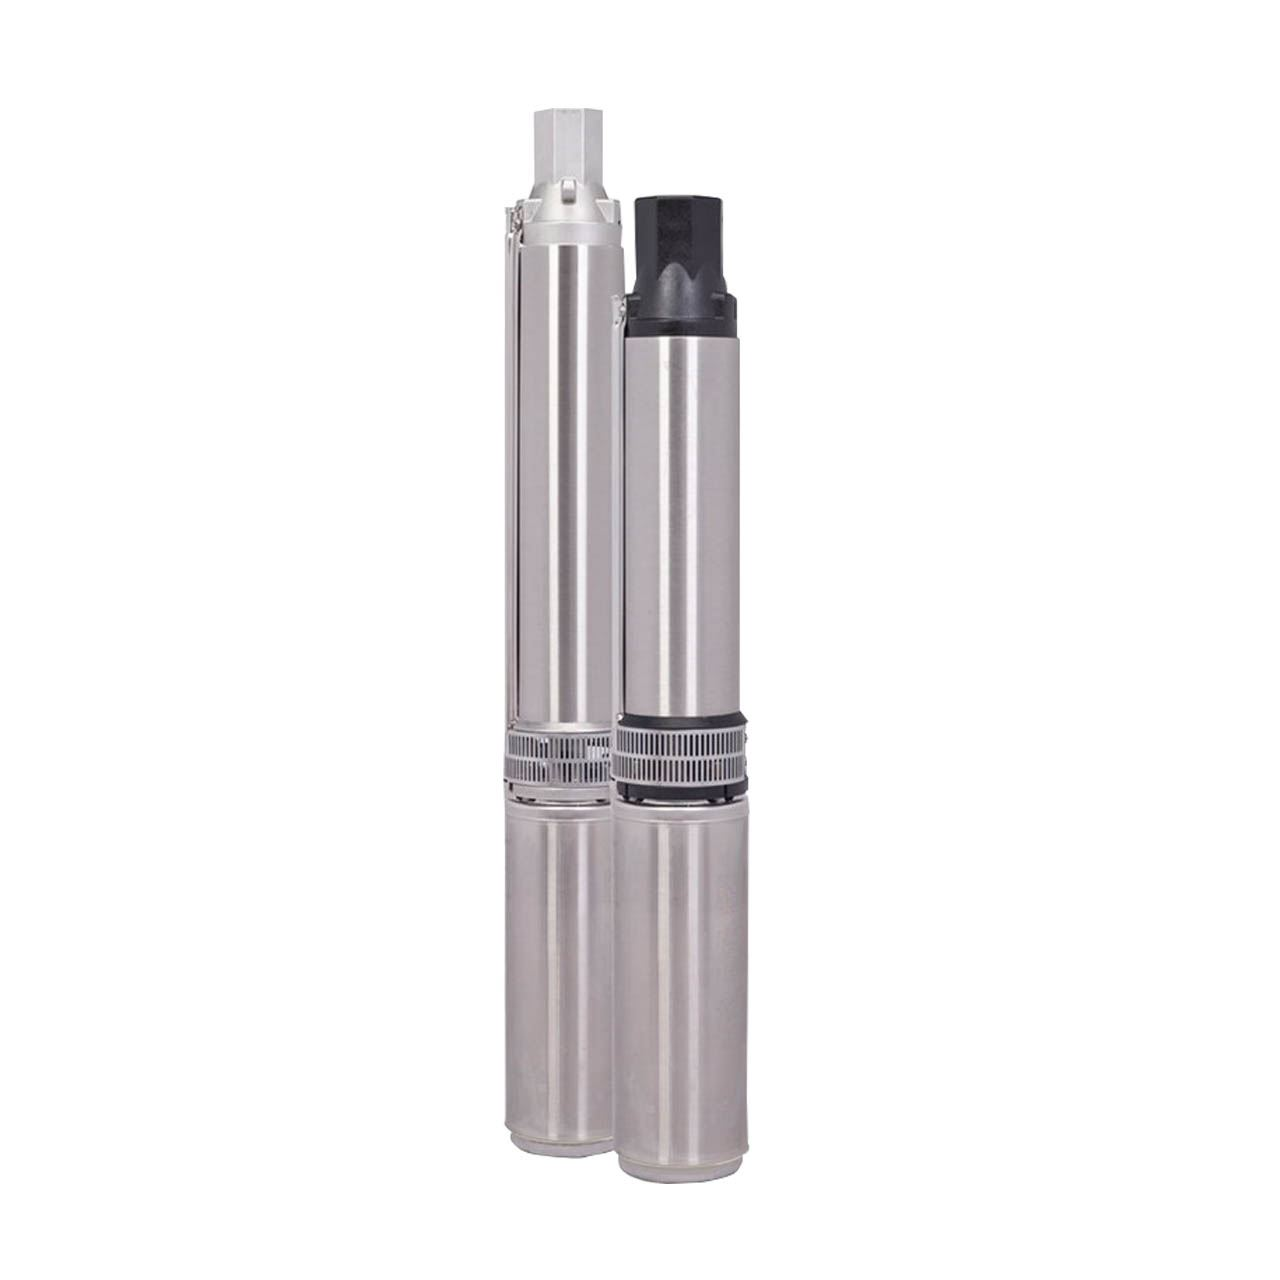 franklin electric franklin electric 3200 series 7fr05p4 2w230franklin electric franklin electric 3200 series 7fr05p4 2w230 submersible pump 7 gpm 0 5 hp 230v 1ph 2 wire fec96210710